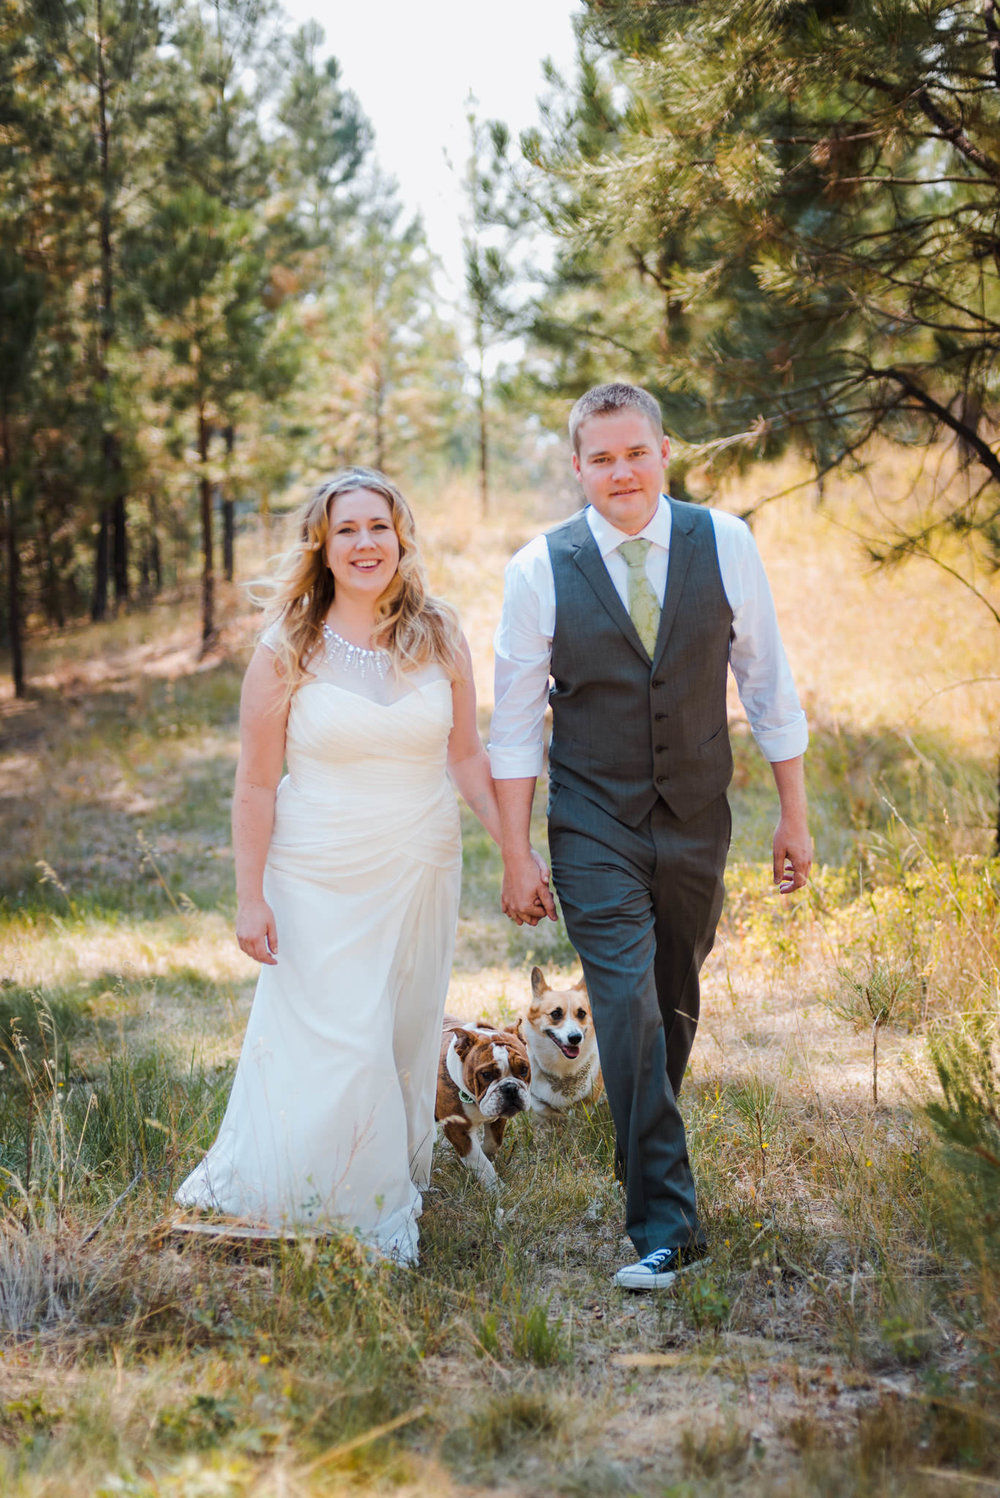 Zilla Photography Wild Adventure Mountain Wedding Dogs